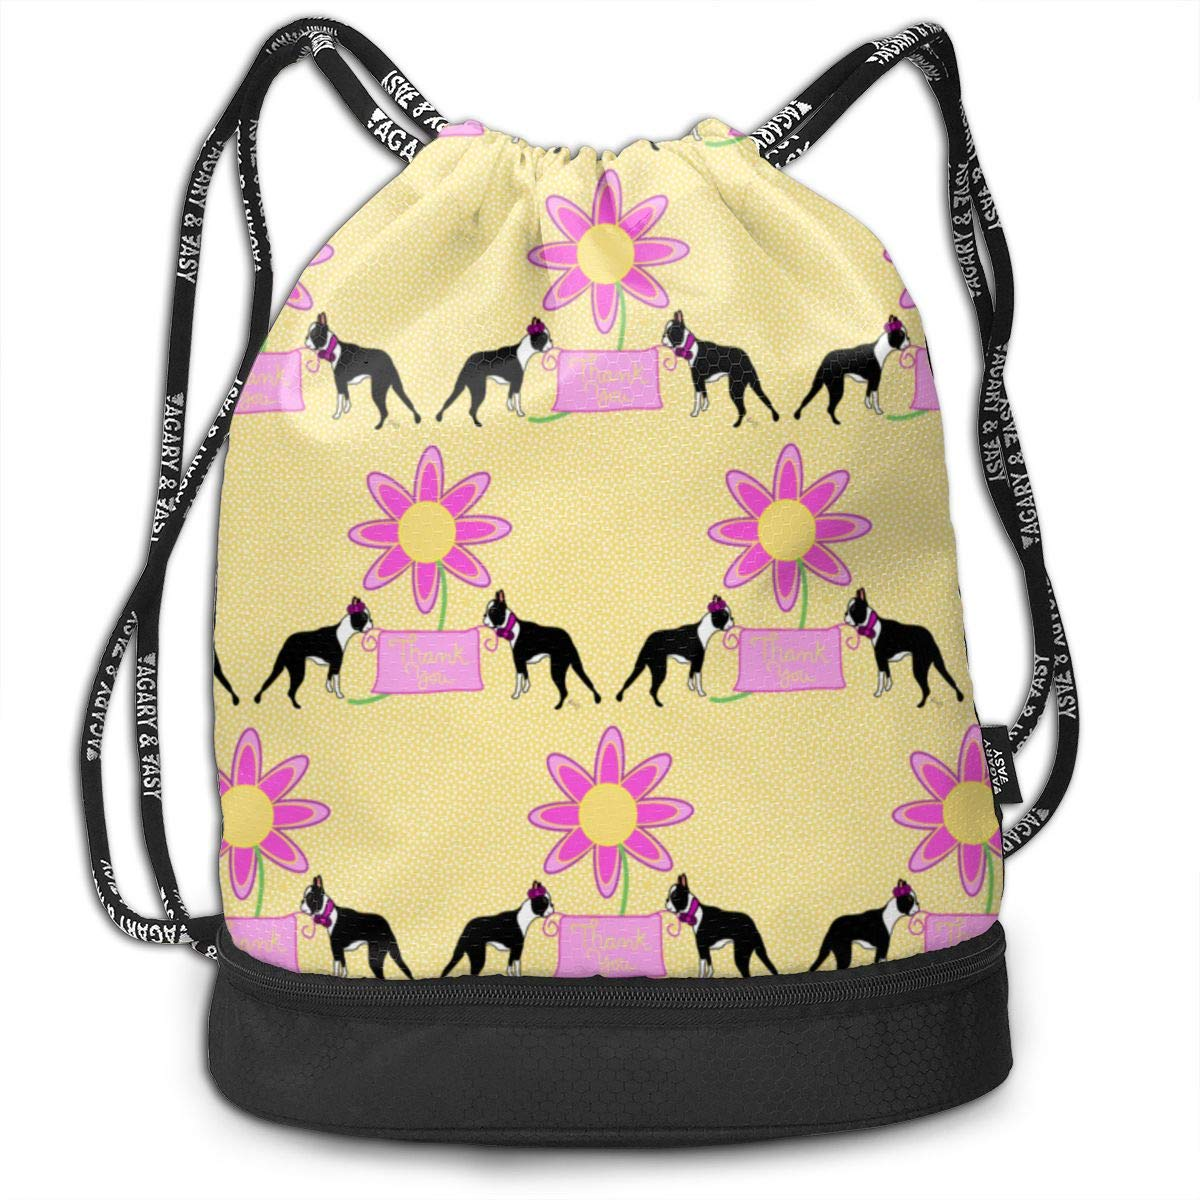 A Boston Terrier Thank You Drawstring Backpack Sports Athletic Gym Cinch Sack String Storage Bags for Hiking Travel Beach